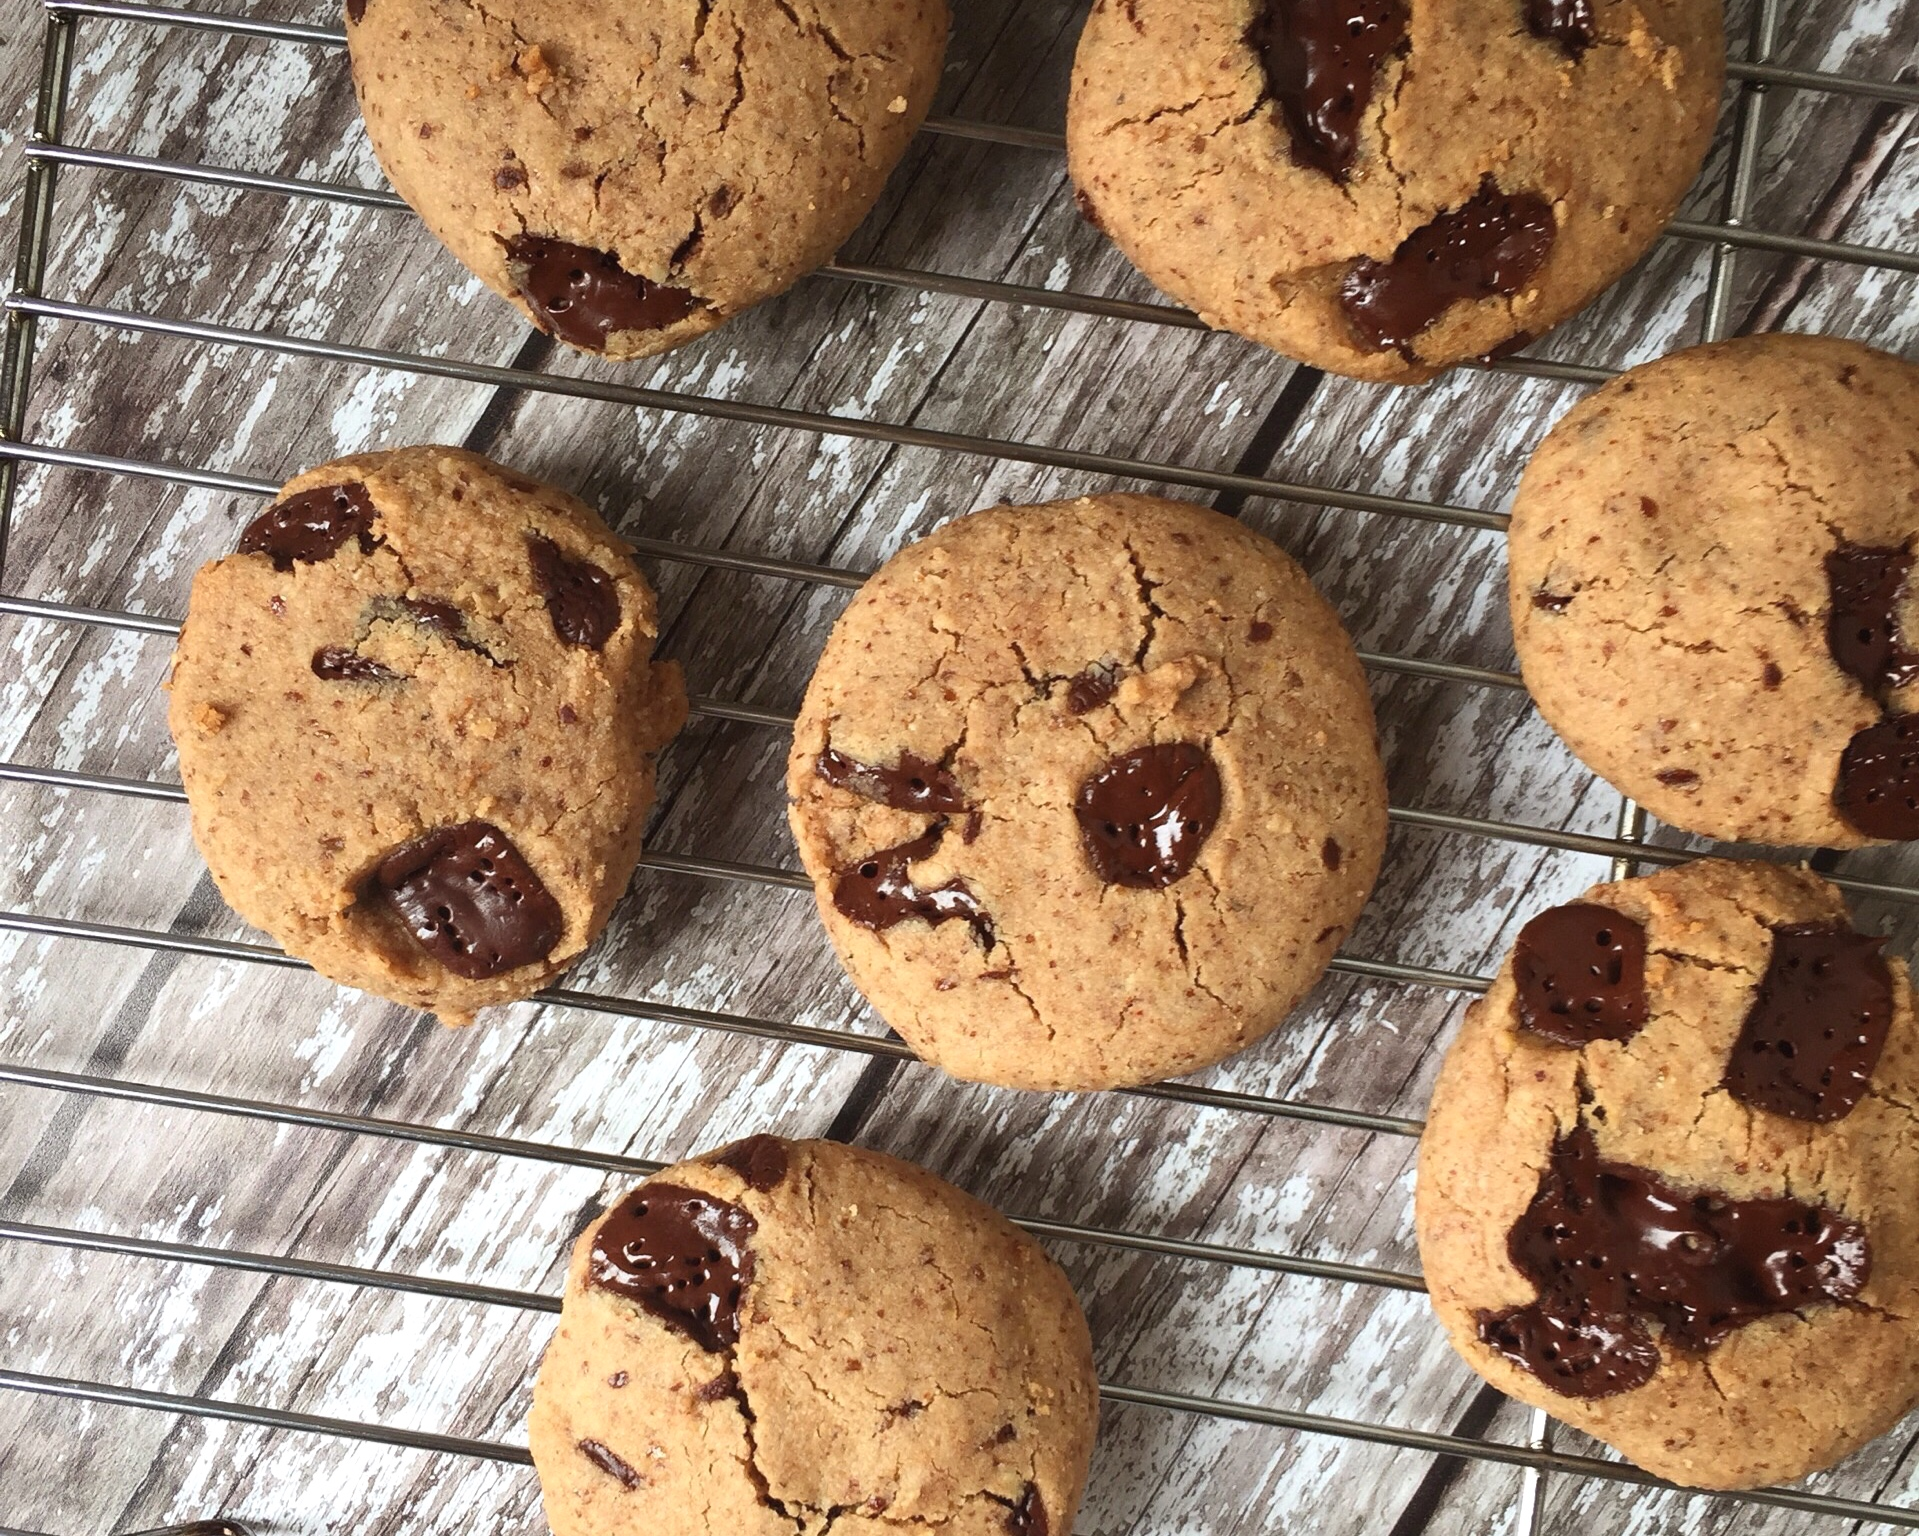 Almond+Butter+%26+Chocolate+Chip+Cookies+Nourish+by+Rebecca.jpg